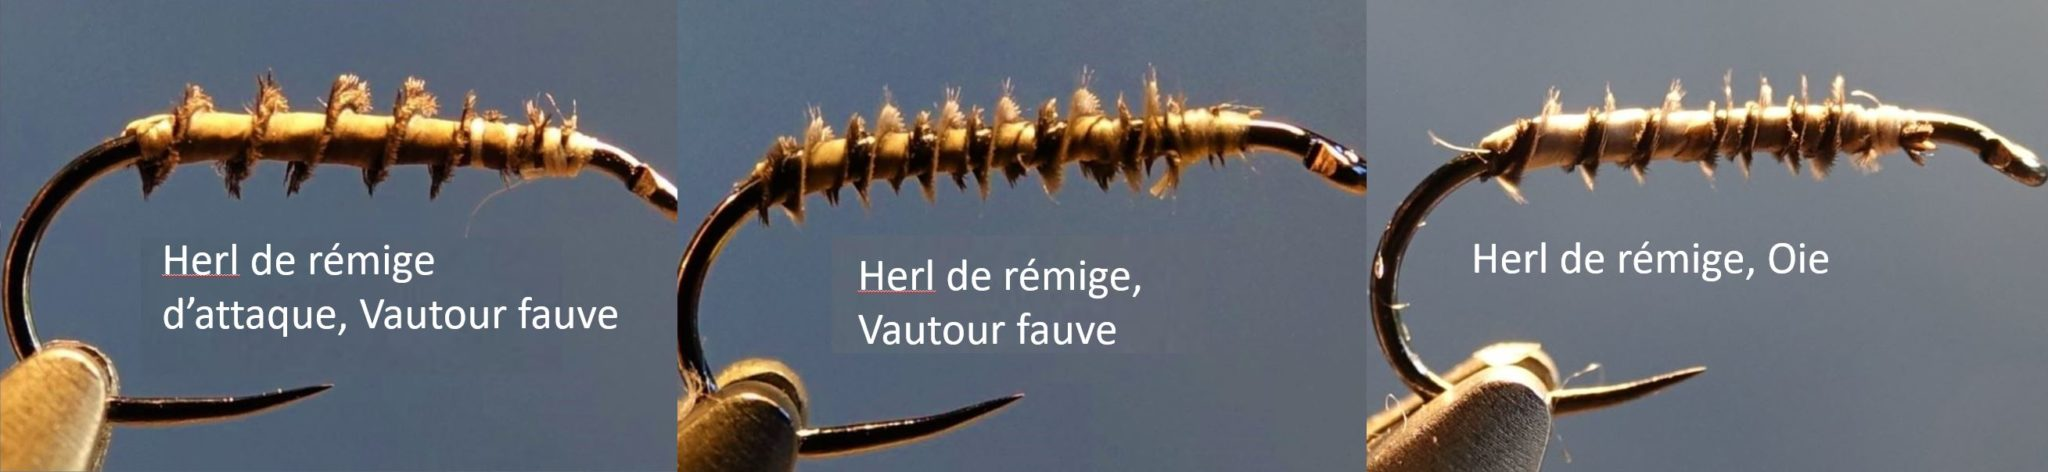 herl remige plume vautour oie mouche fly tying eclosion